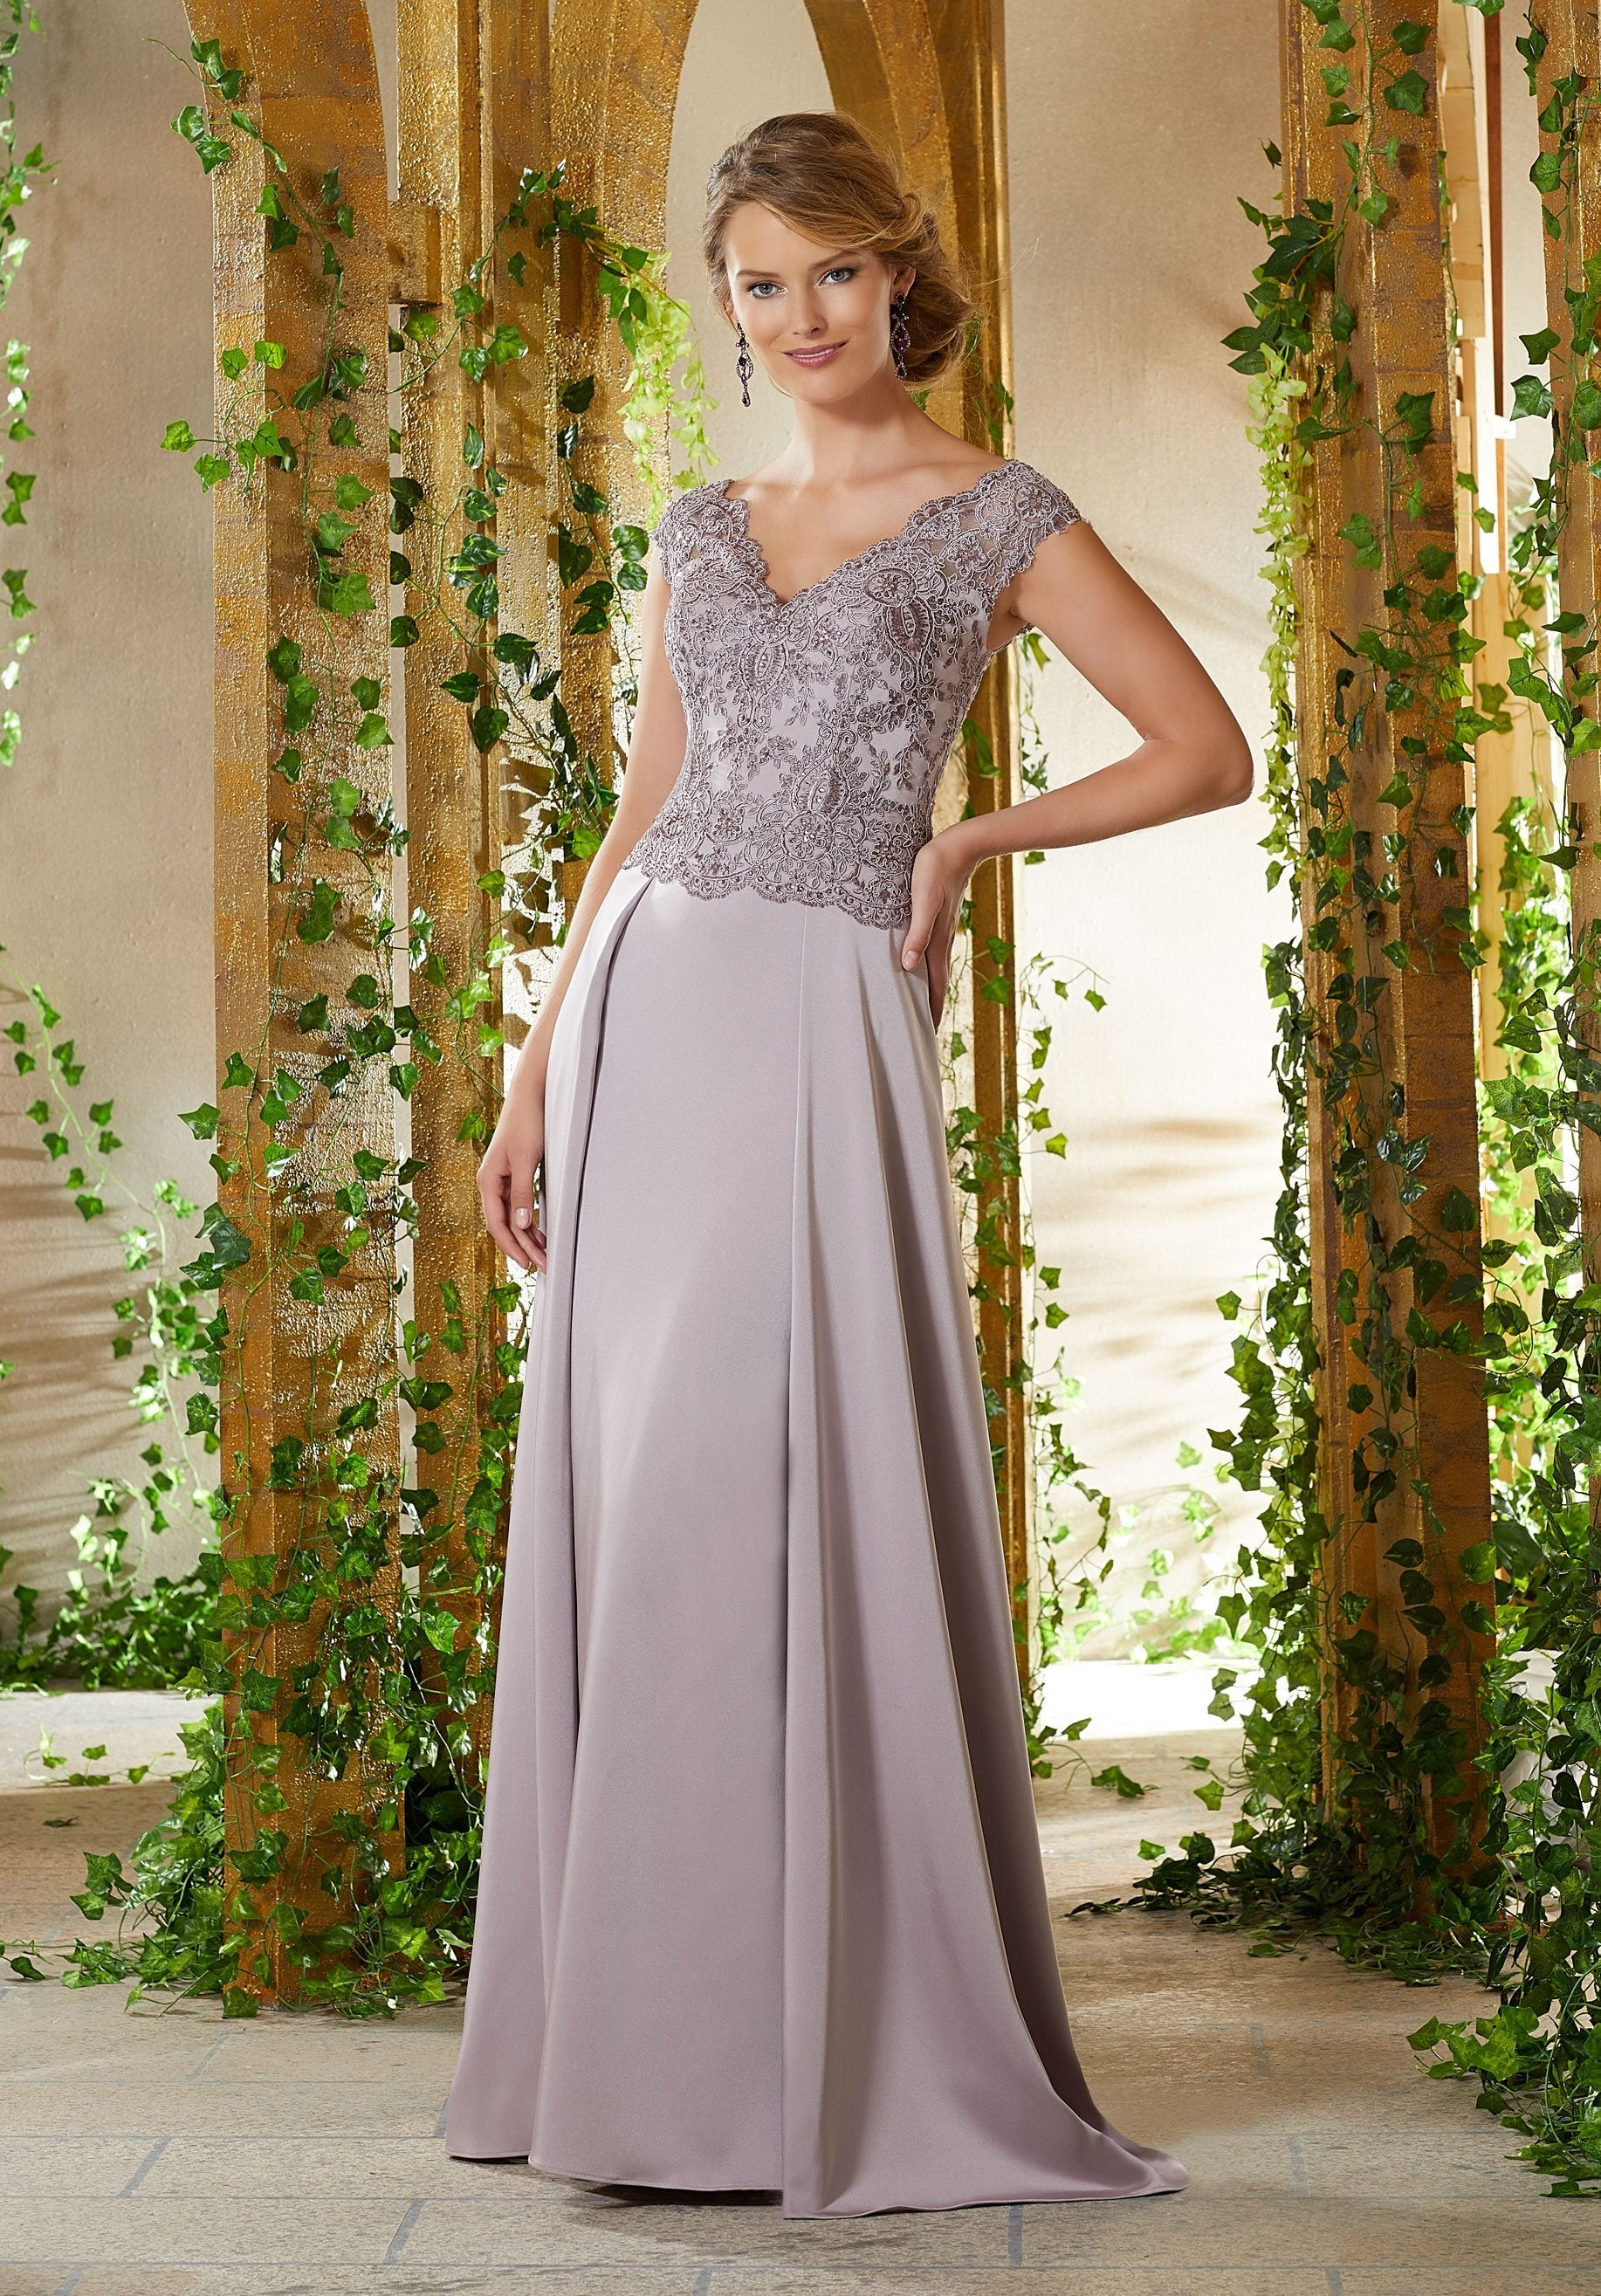 MGNY By Mori Lee - Embroidered V-neck Dress With Train 71906SC In Purple